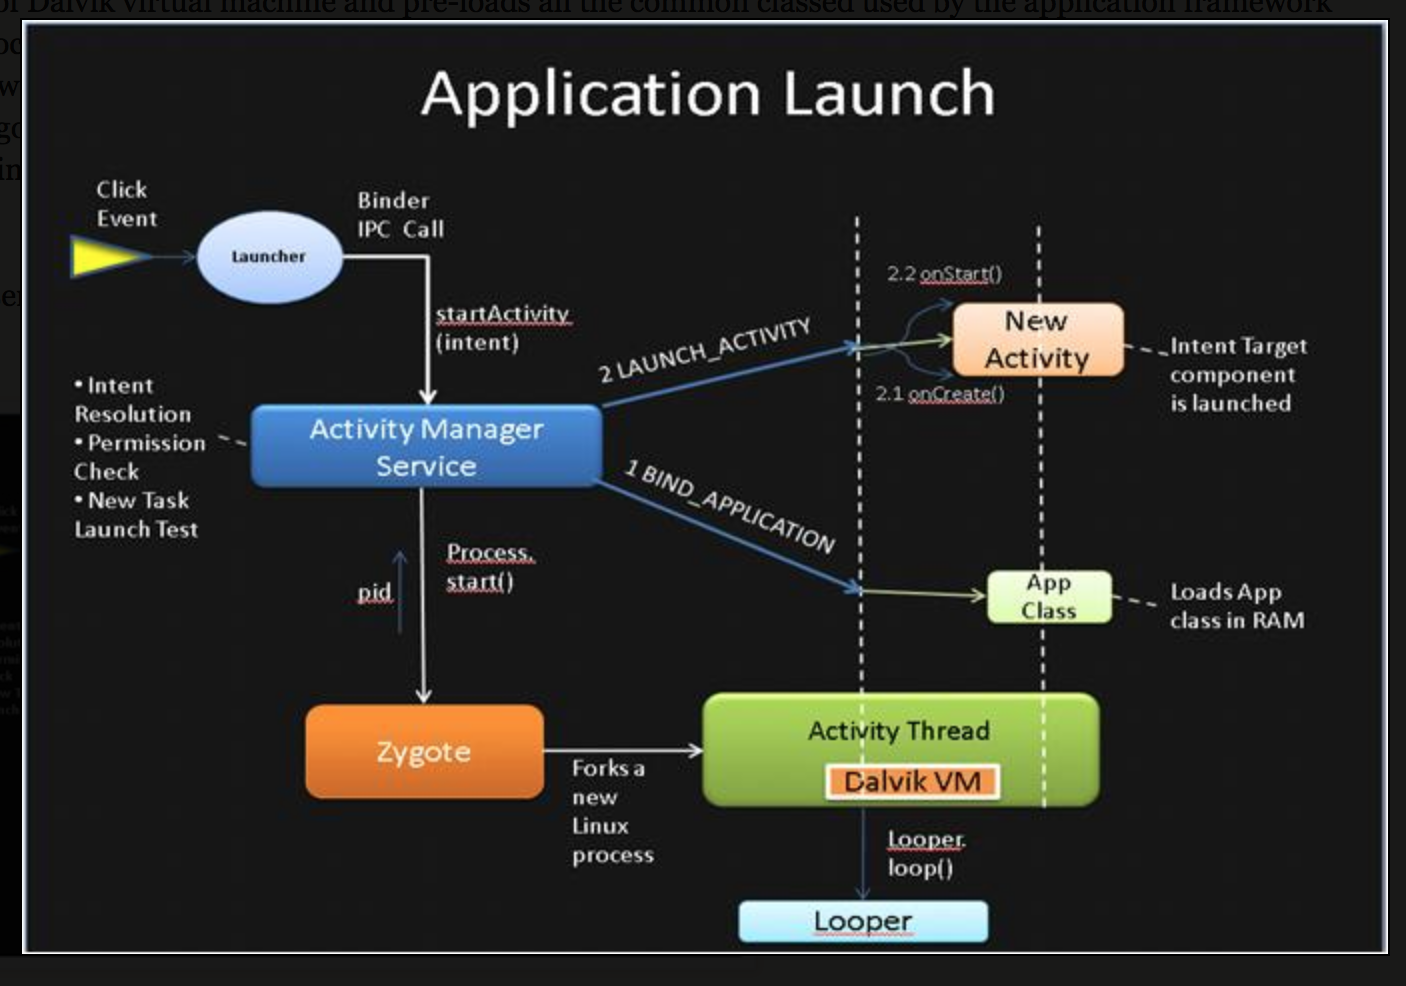 Android Application Launch explained: from Zygote to your